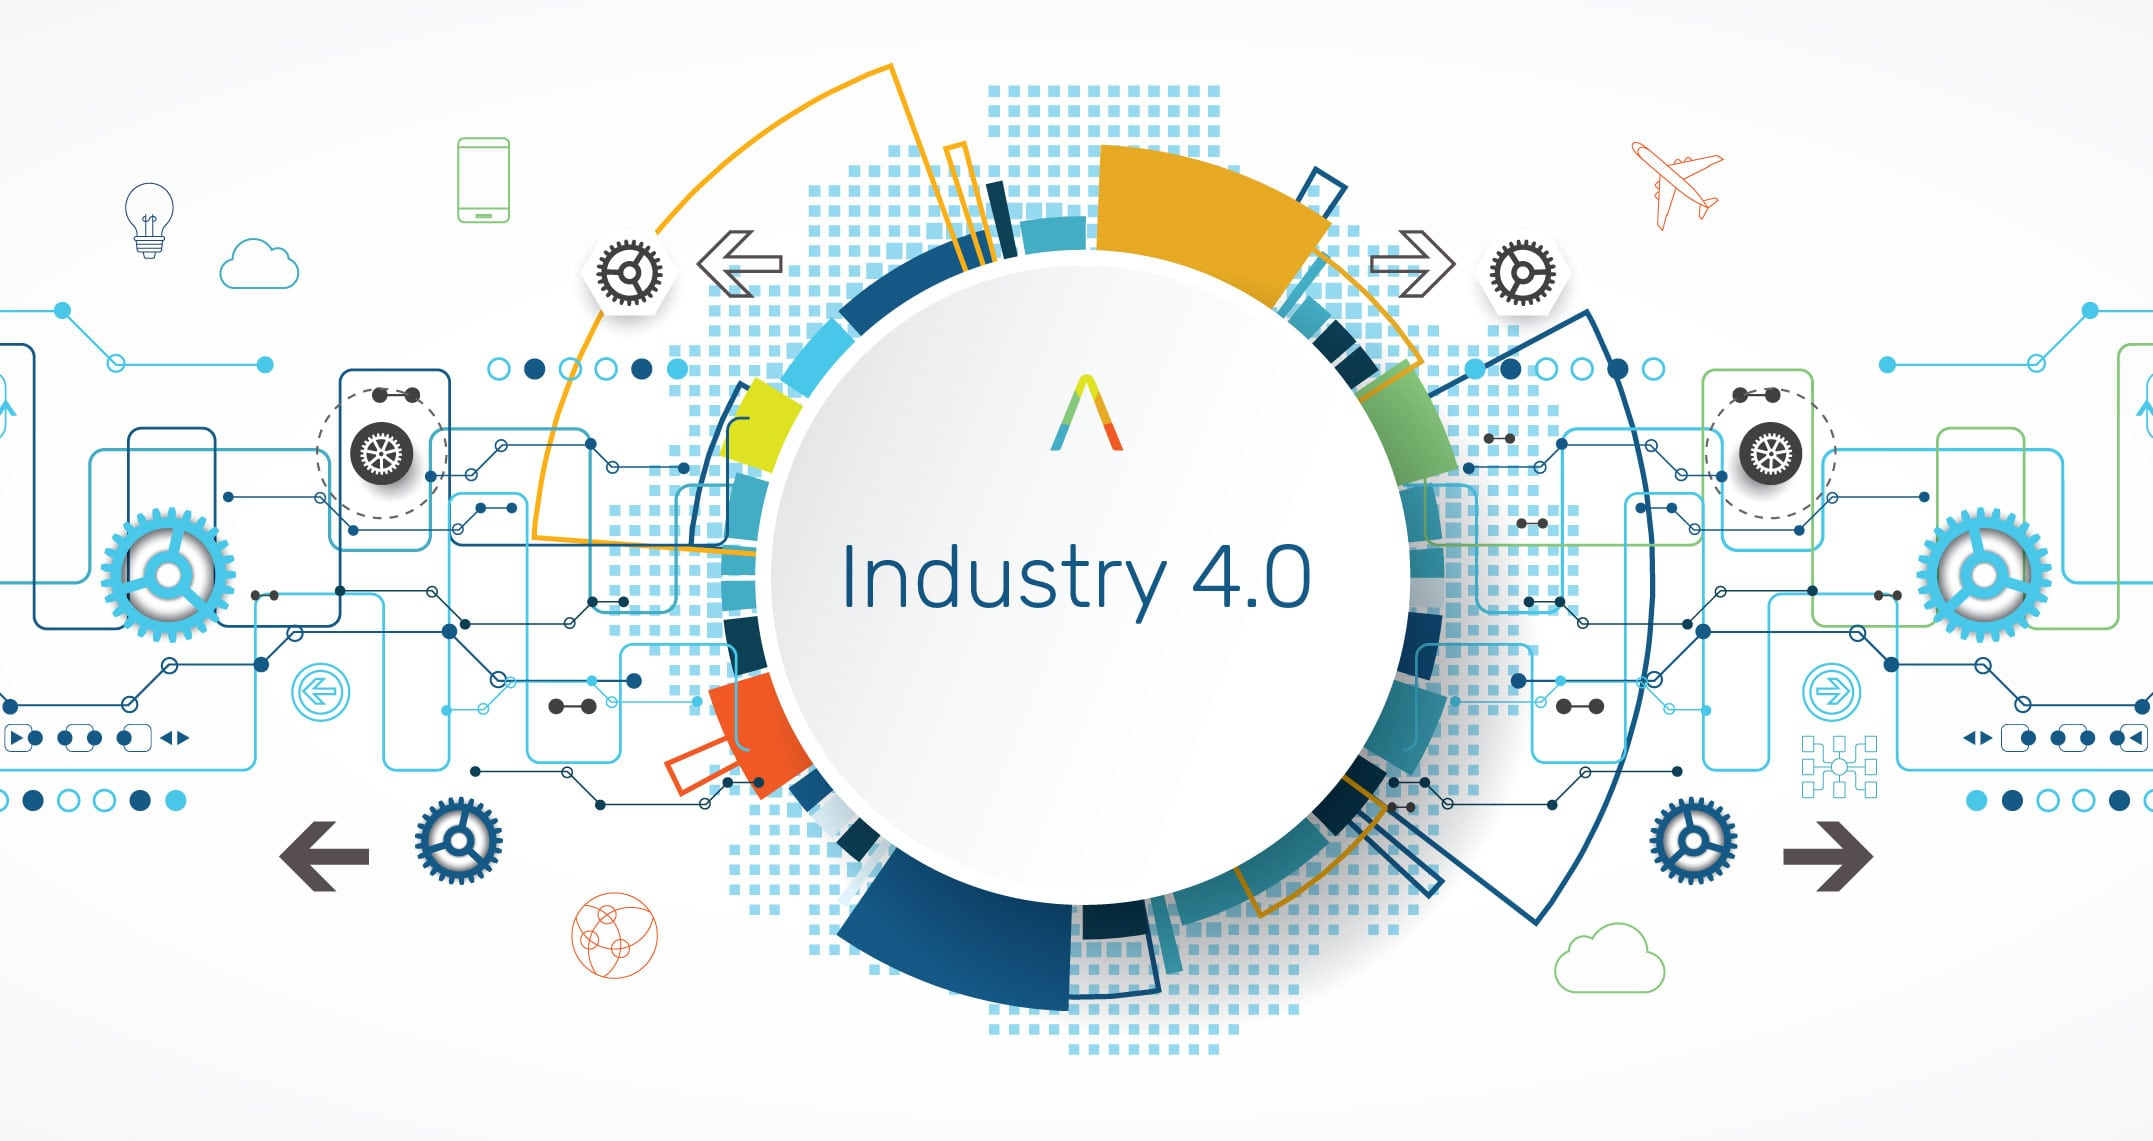 Industry 4.0, Web 3.0 and Digital Transformation